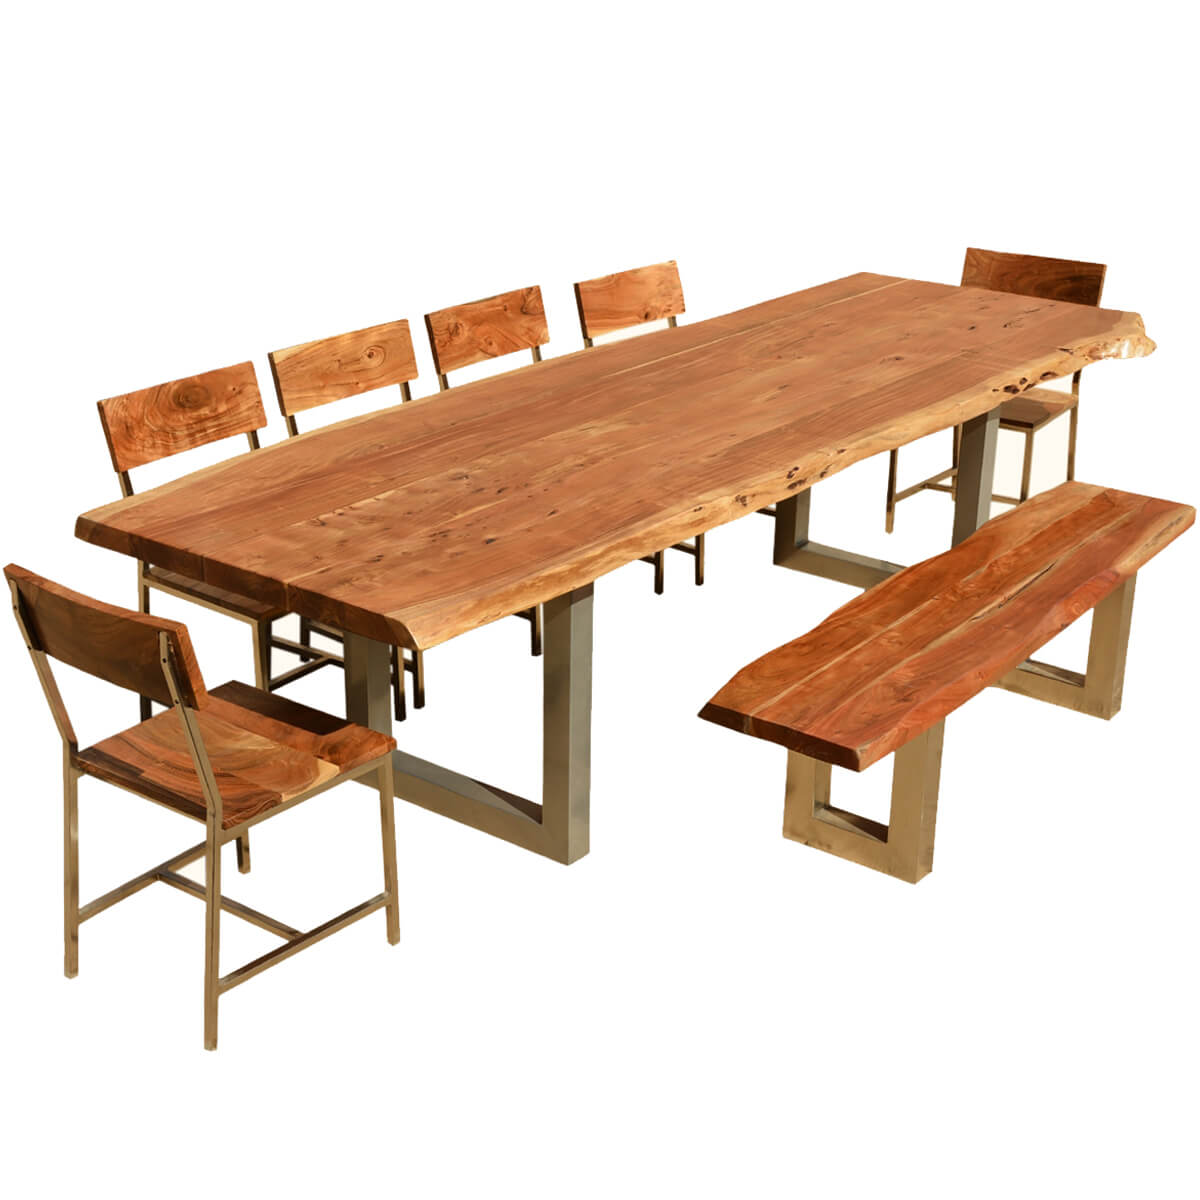 "Dinner Table Bench: 117"" Live Edge Dining Table W 6 Chairs & Bench"